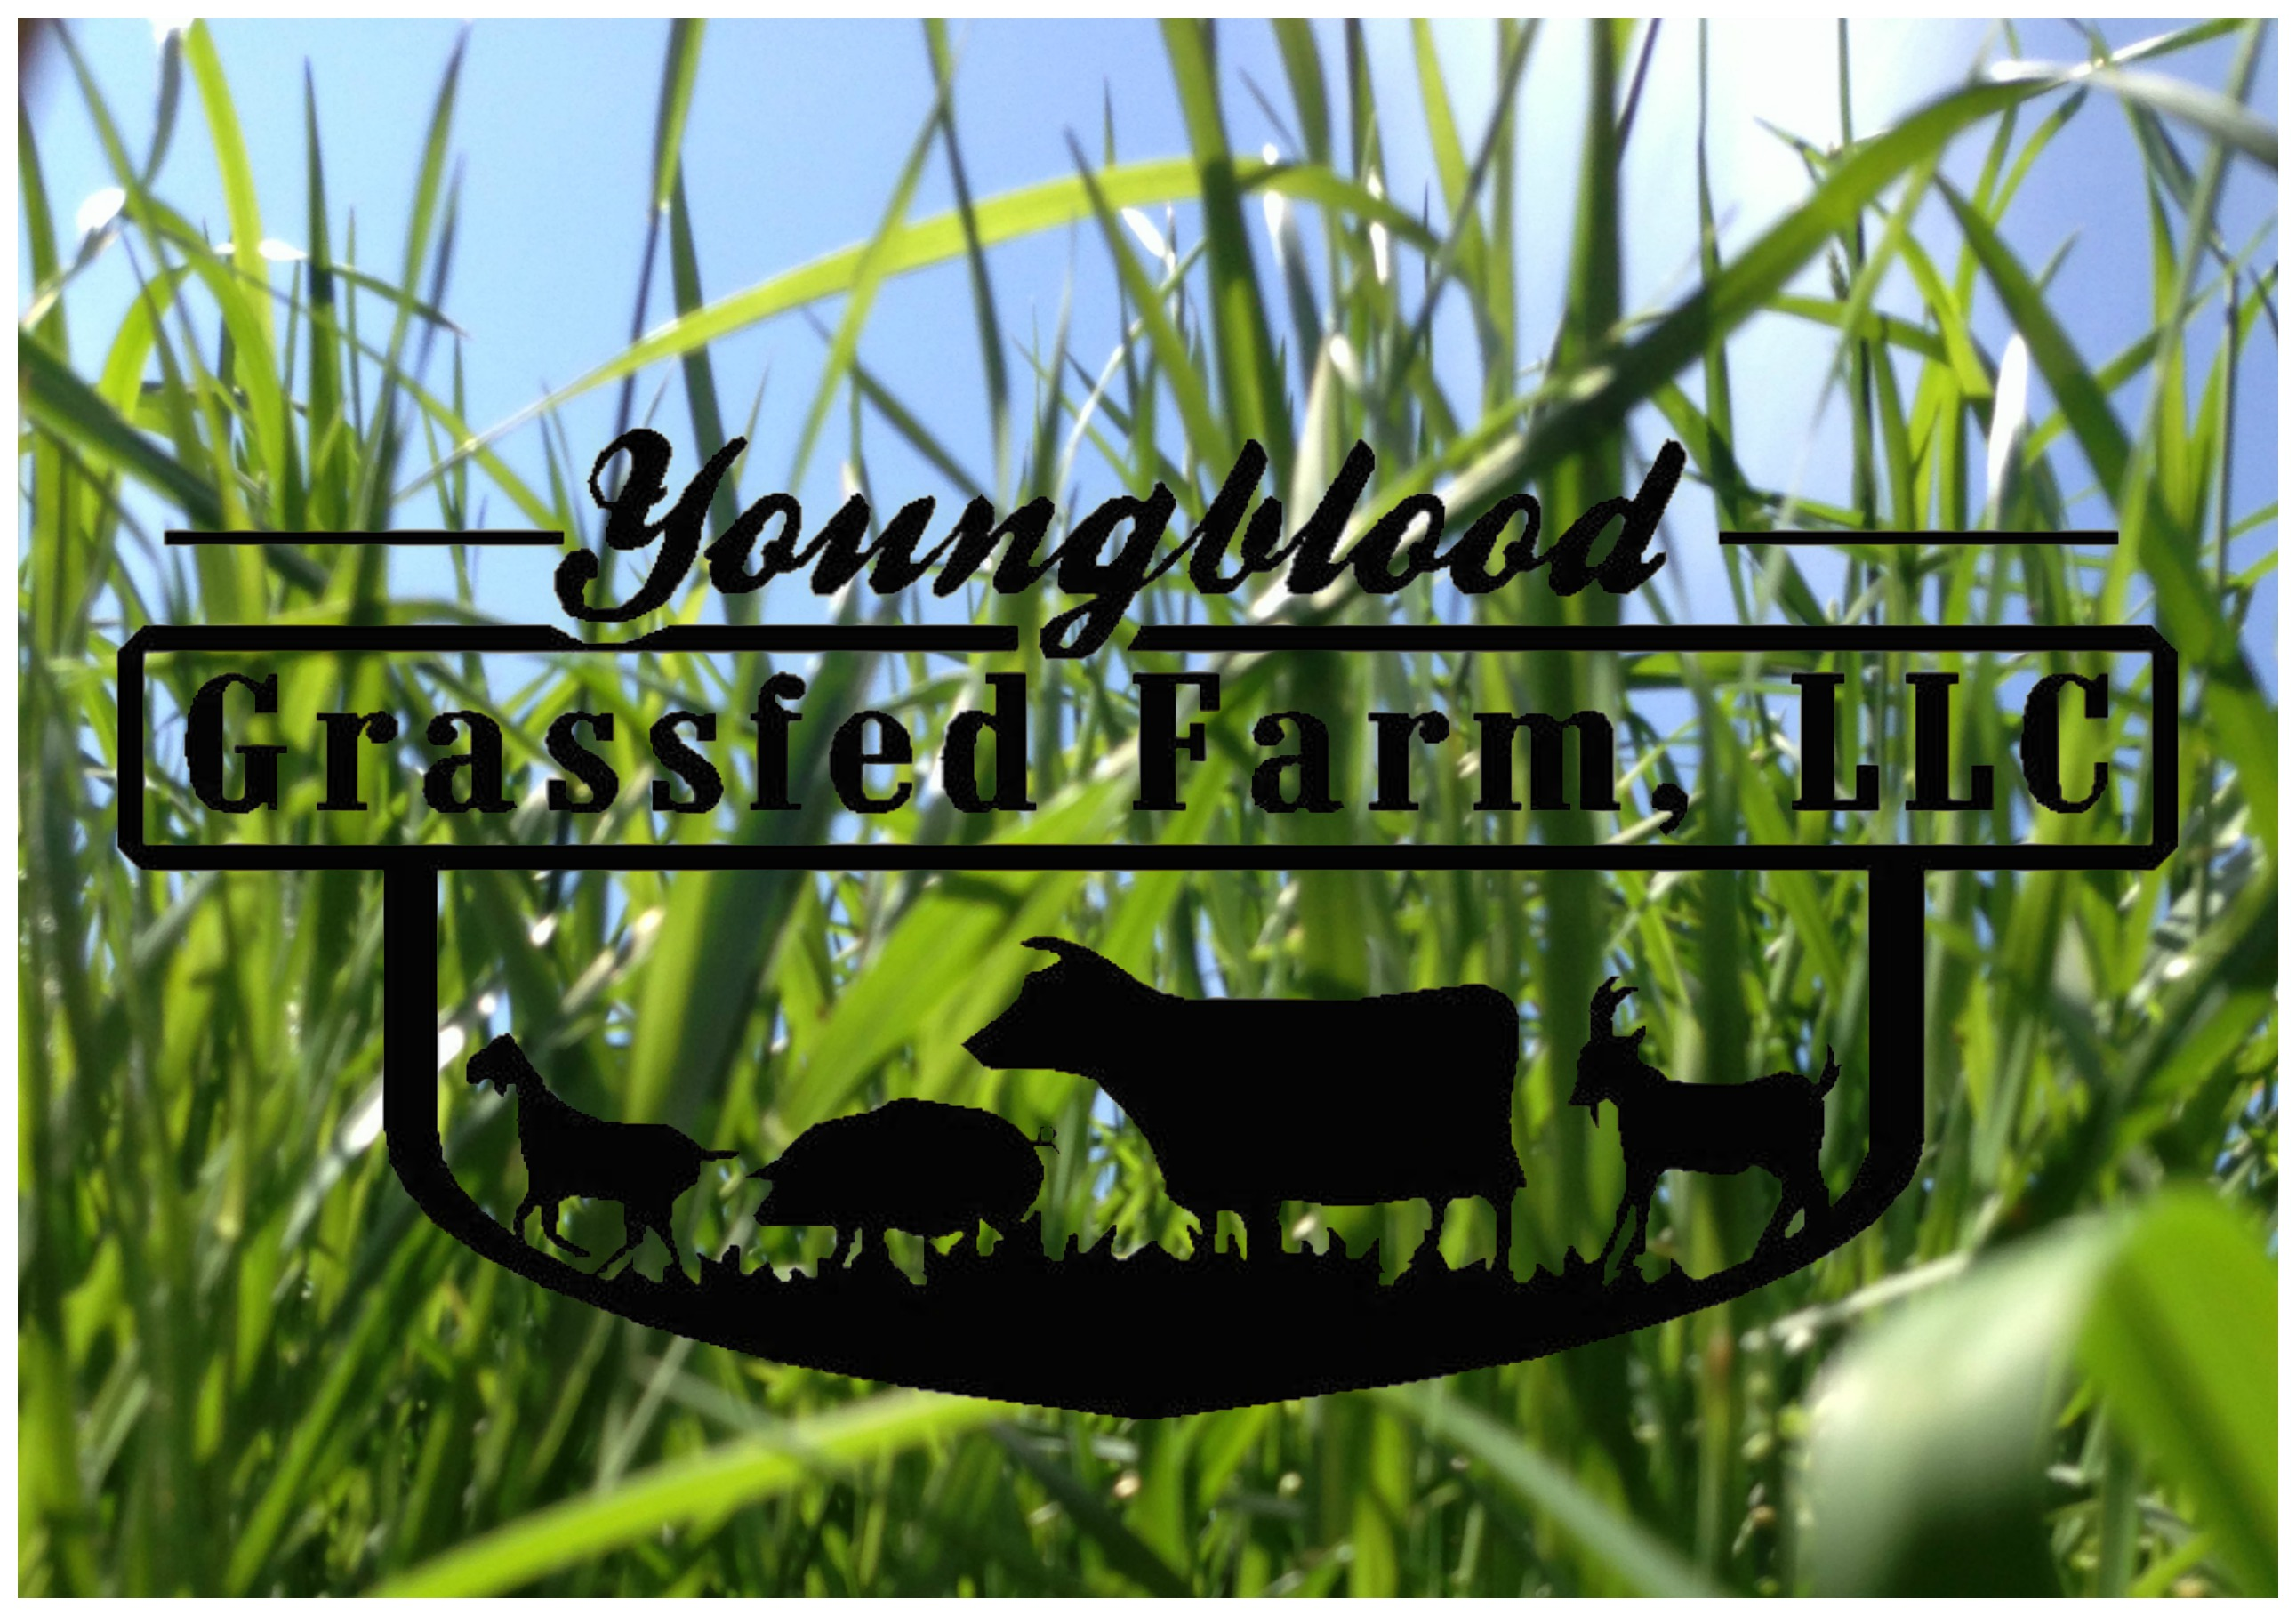 Youngblood GrassFed Farm, L.L.C. Logo